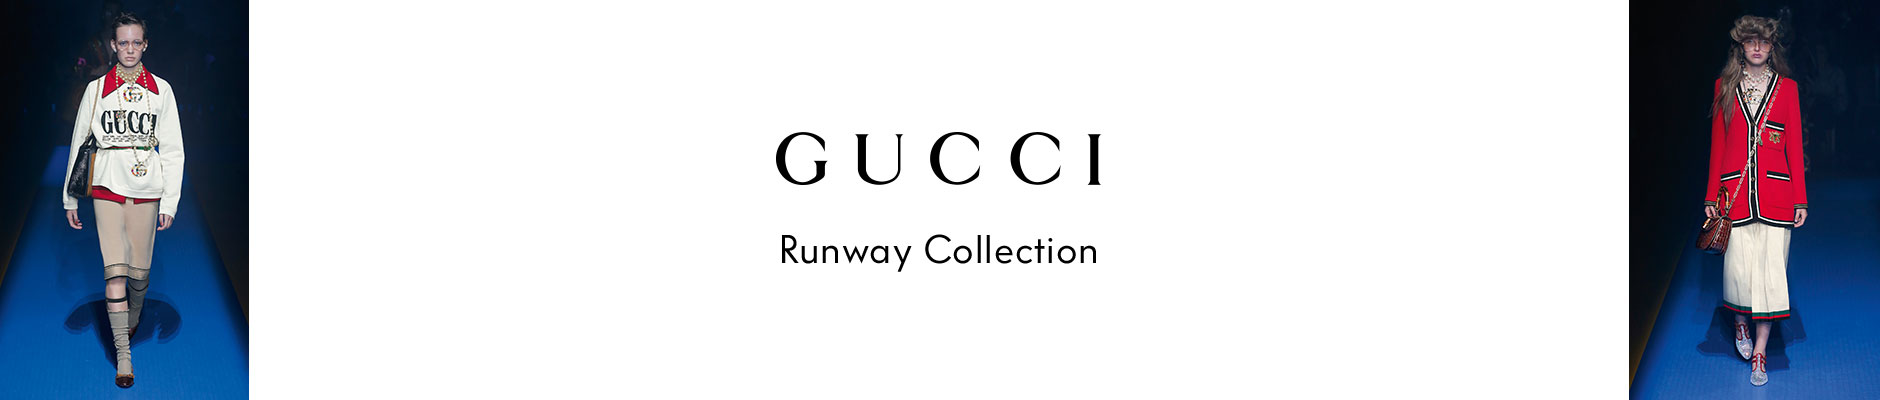 Gucci - Runway Collection